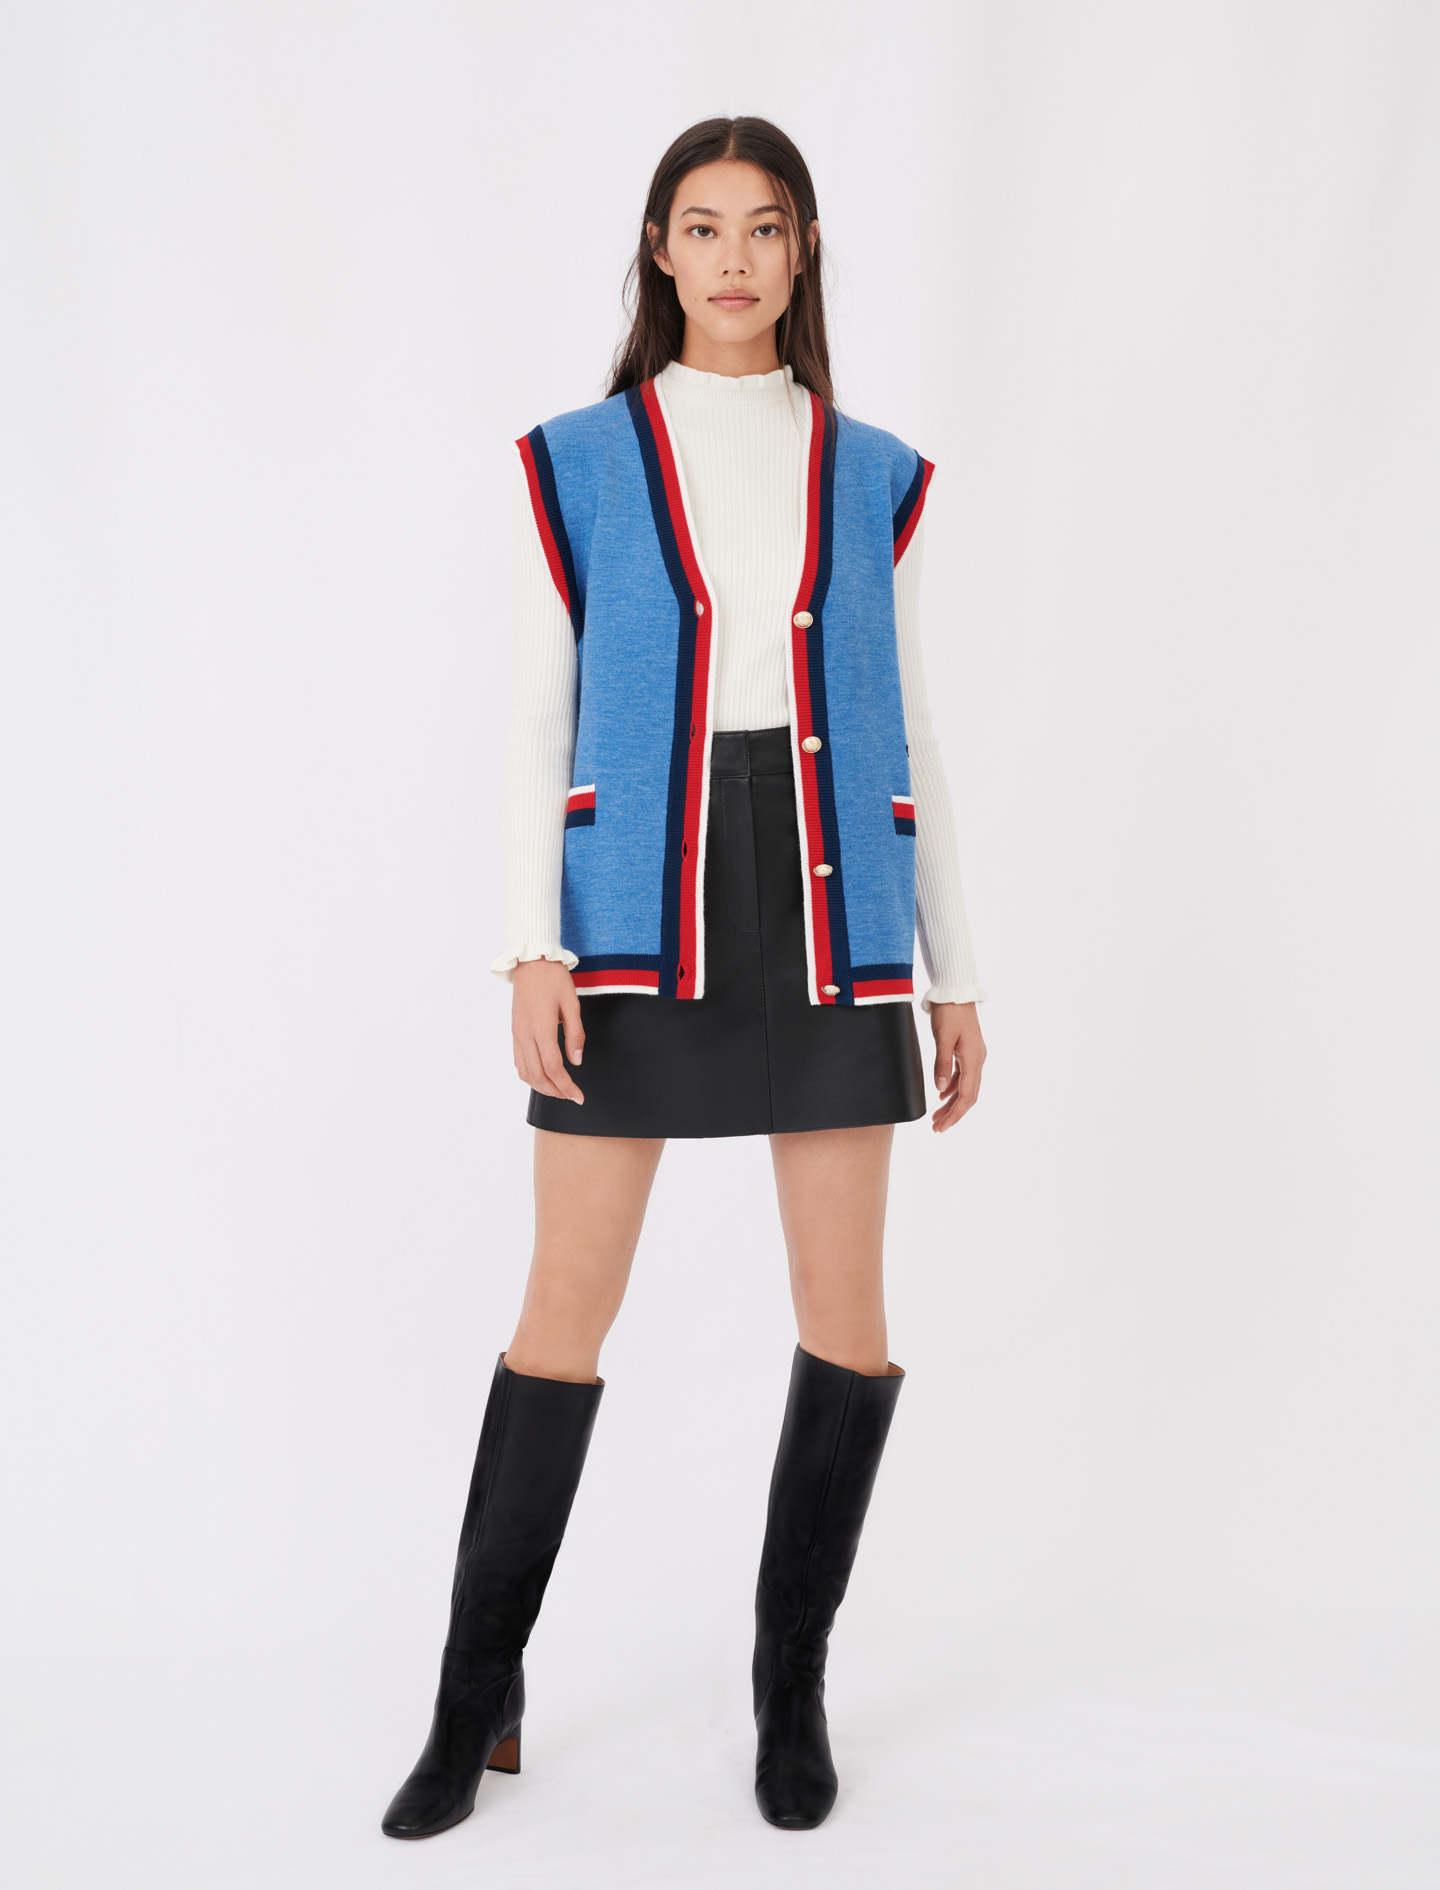 Vest cardigan in royal blue with red and black trims by Maje Paris